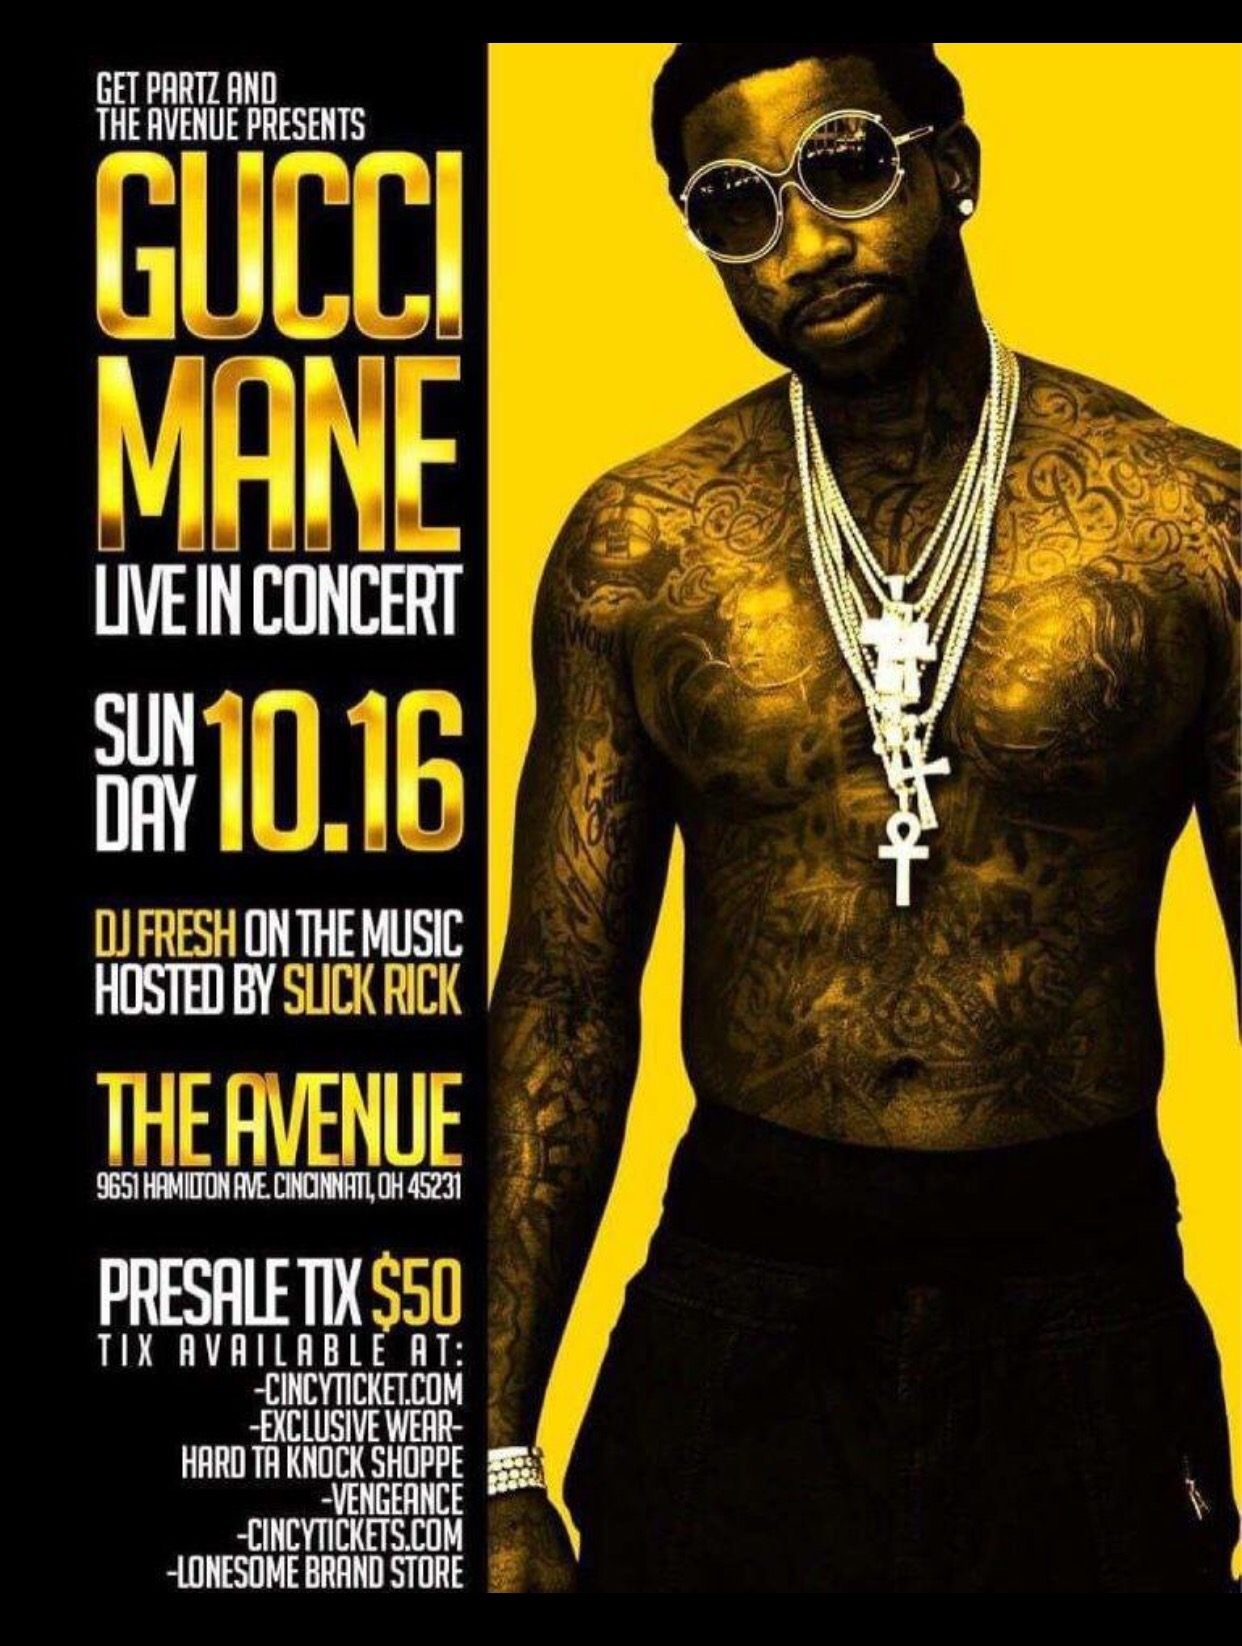 cabc99aa49c GUCCI MANE LIVE IN CONCERT   THE AVENUE IN CINCINNATI 10.16.16 ...